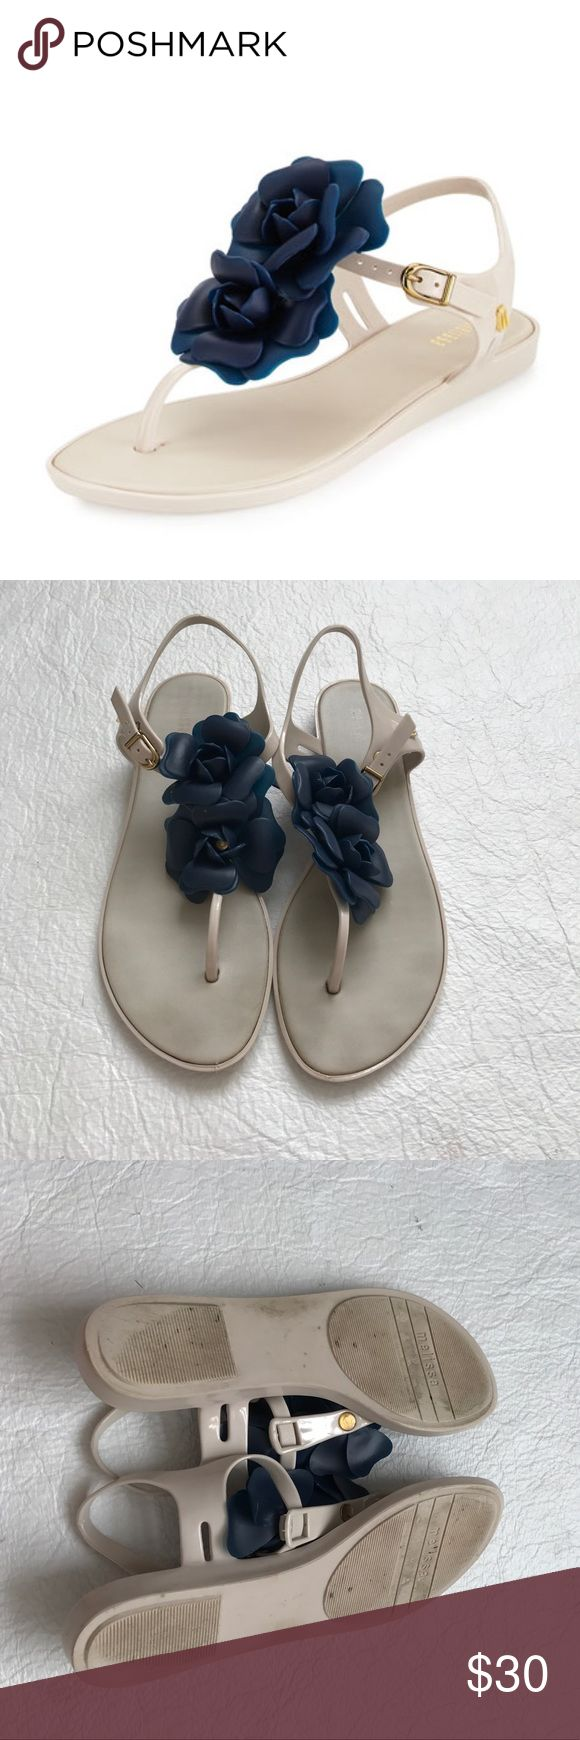 Melissa Solar Sandals Taupe with navy flower. VGUC. Small signs of wear but nothing major. Smells amazing and will leave your feel smelling like my little pony! 37 Brazil or 8 USA. Melissa Shoes Sandals